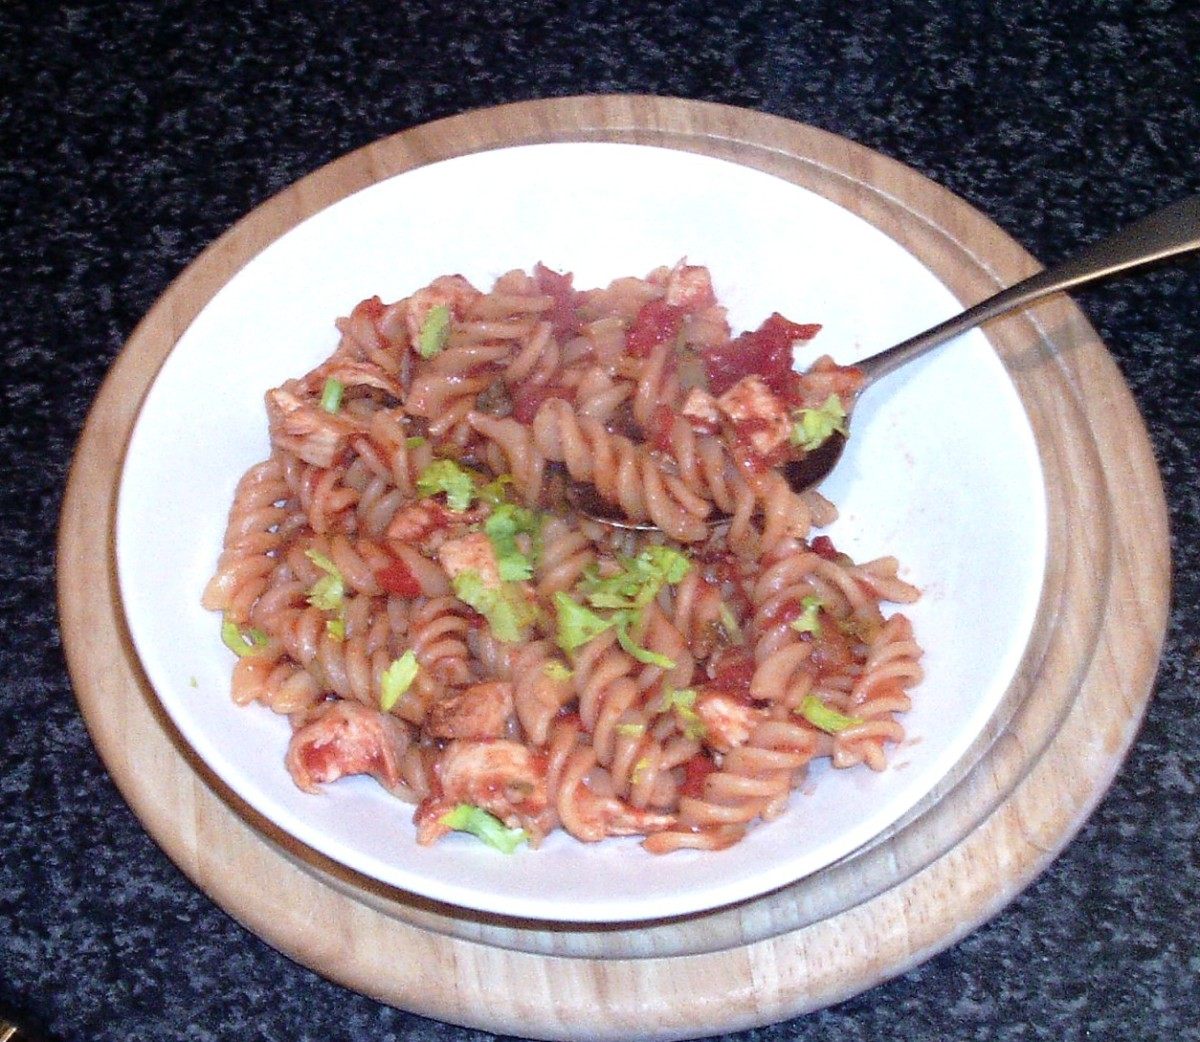 Enjoying chicken and celtuce fusilli pasta